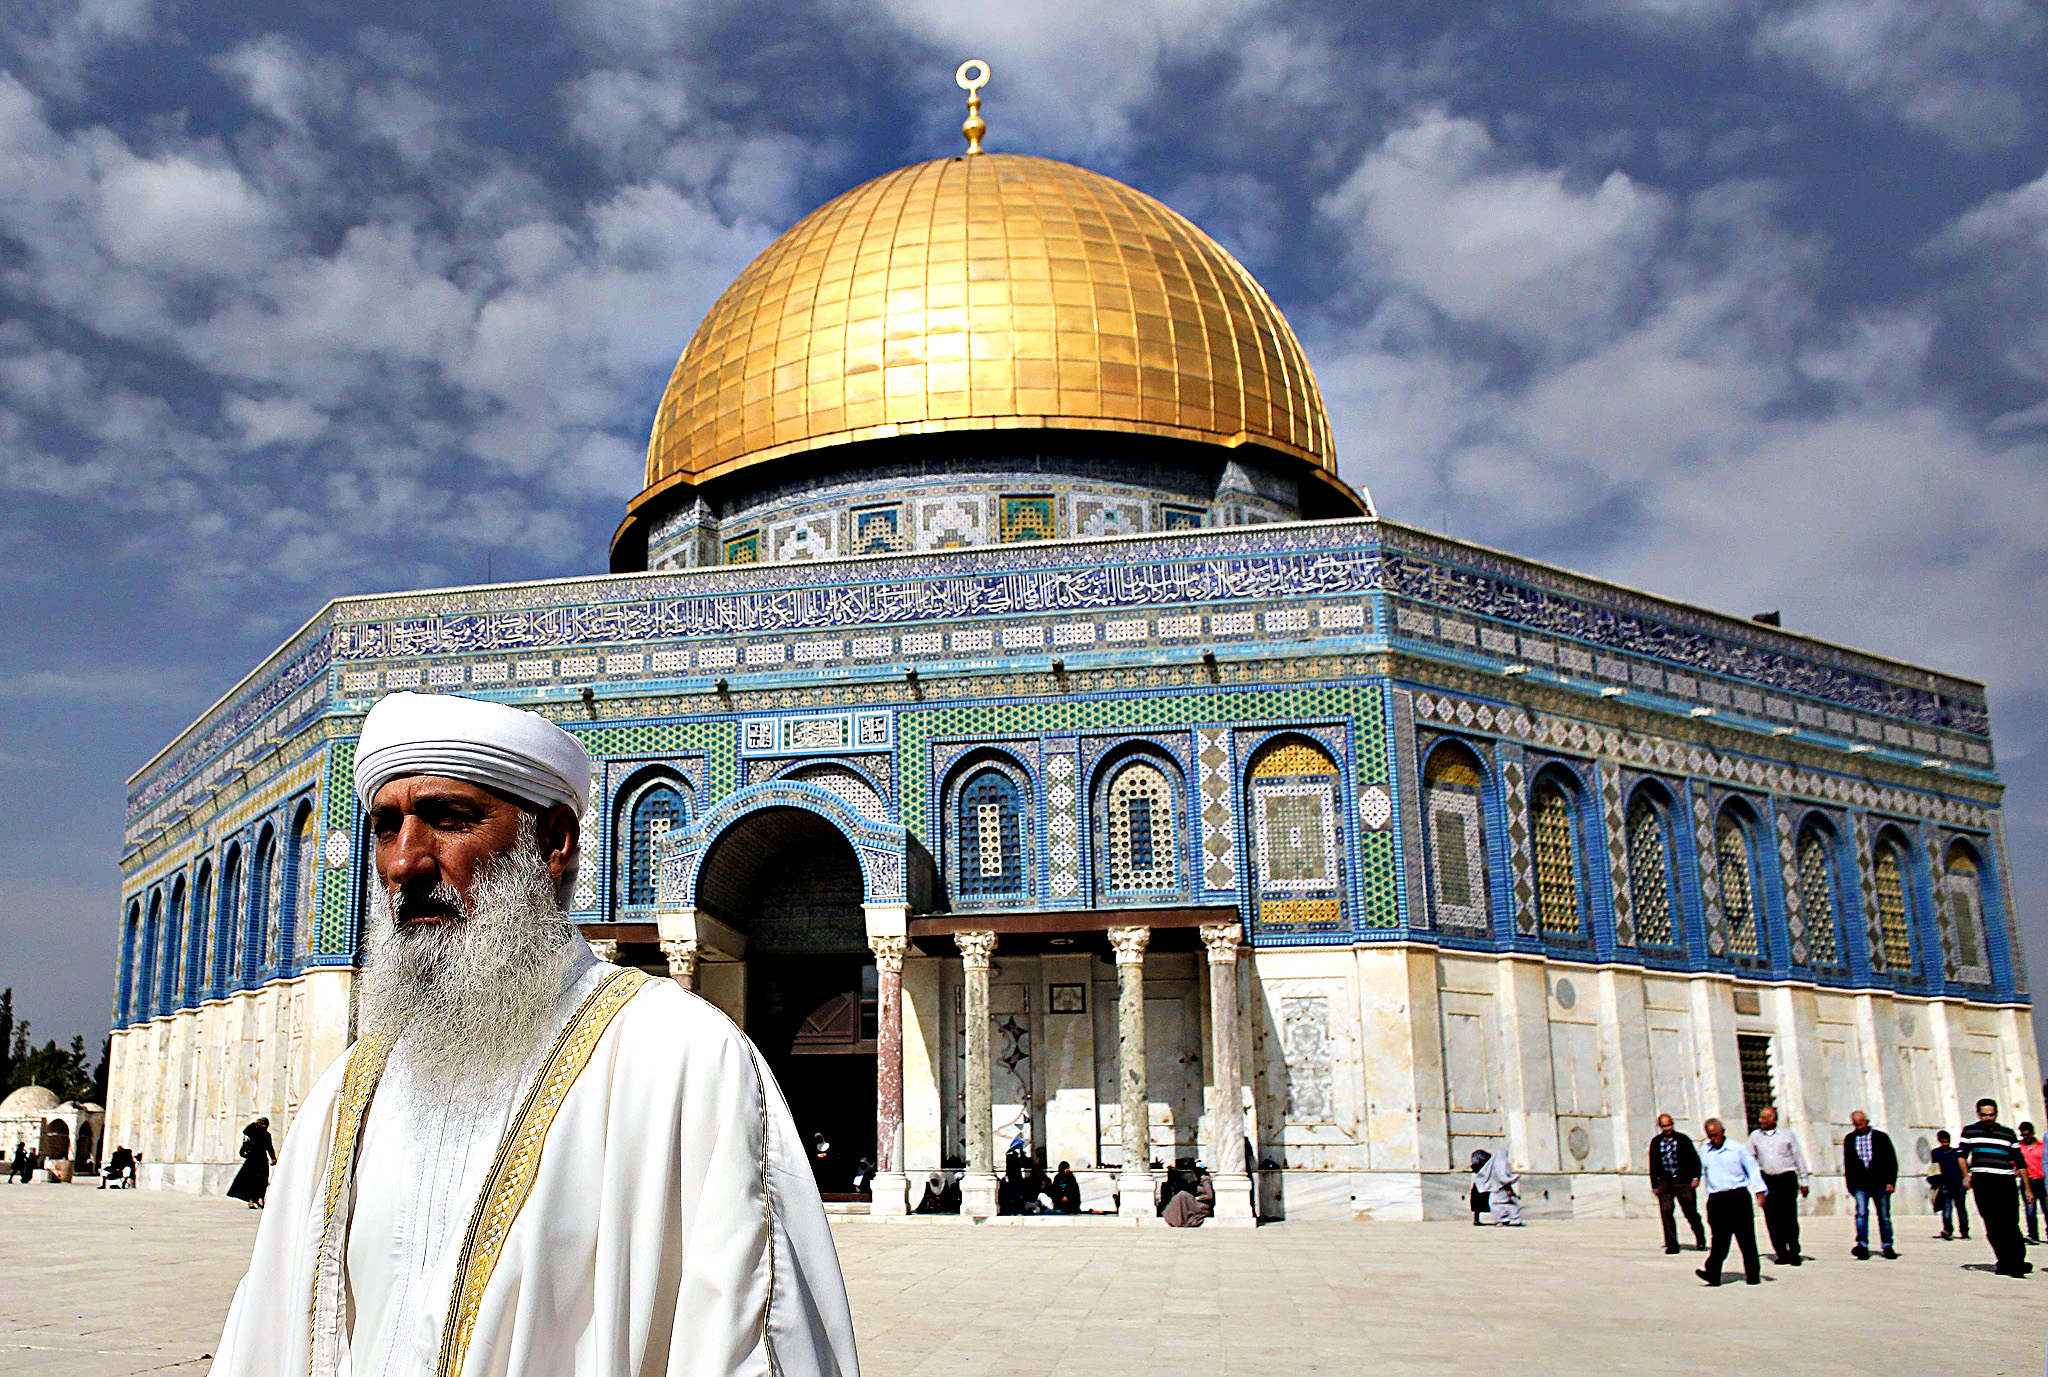 Palestinian worshippers walk outside the Dome of the Rock at the Al-Aqsa mosque compound after Friday prayers  in the Old City of Jerusalem on November 14, 2014. Israel eased restrictions at Jerusalem's Al-Aqsa mosque after US Secretary of State John Kerry announced agreement on steps to reduce tensions at the flashpoint compound.